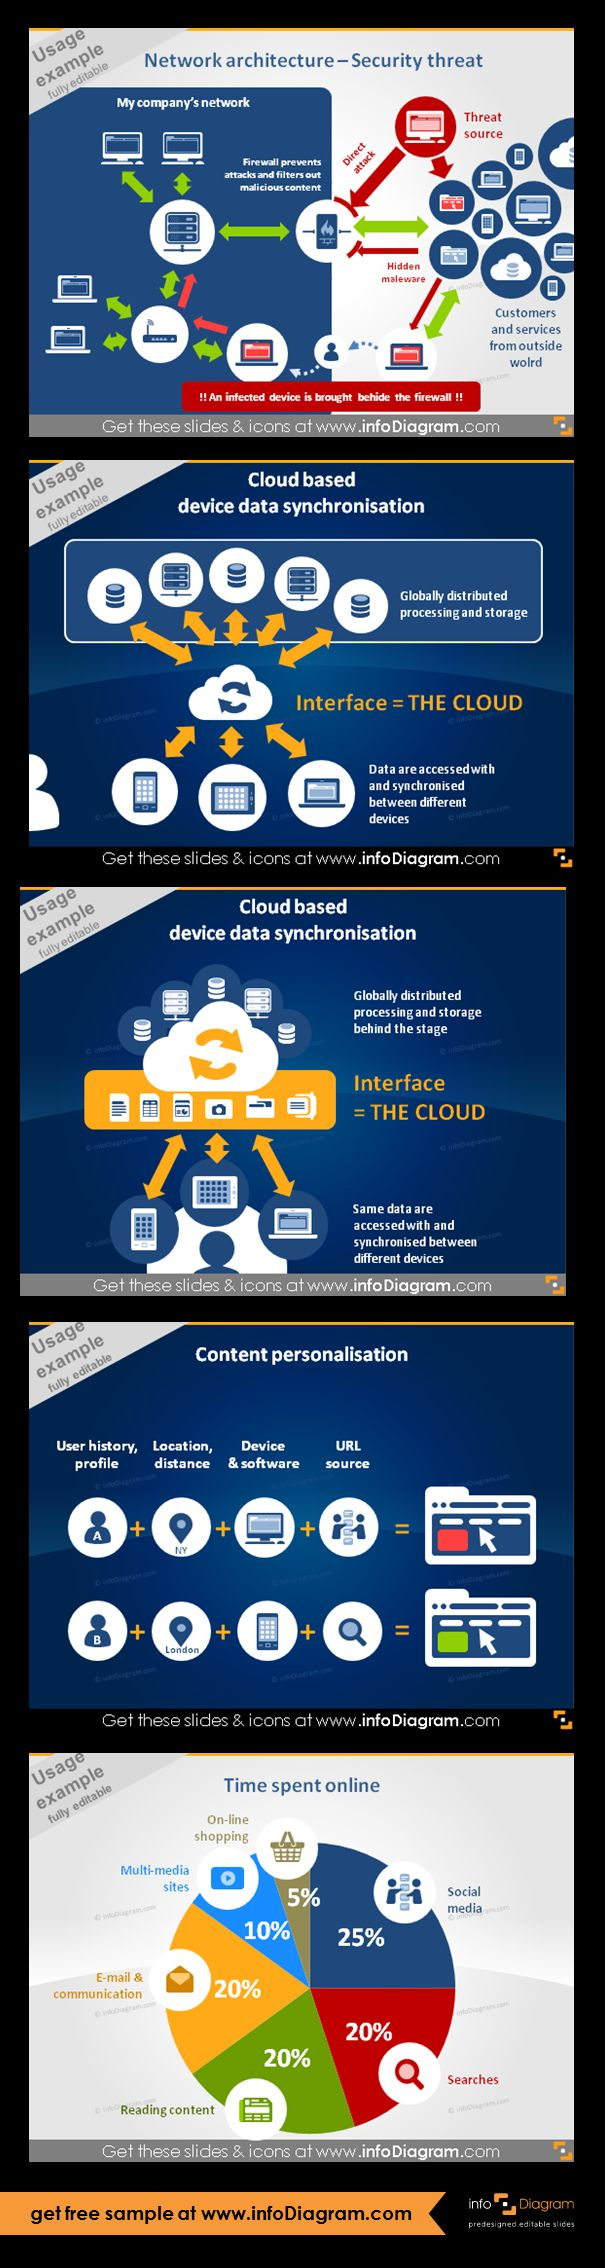 IT Concepts Diagram usage examples: 1. Network architecture Security threat diagram. 2. Cloud based device data synchronization diagram, v.1. 3. Cloud based device data synchronization diagram v.2. 4. Website Content Personalization diagram. 5. Survey statistics visualization of Time Spent online.